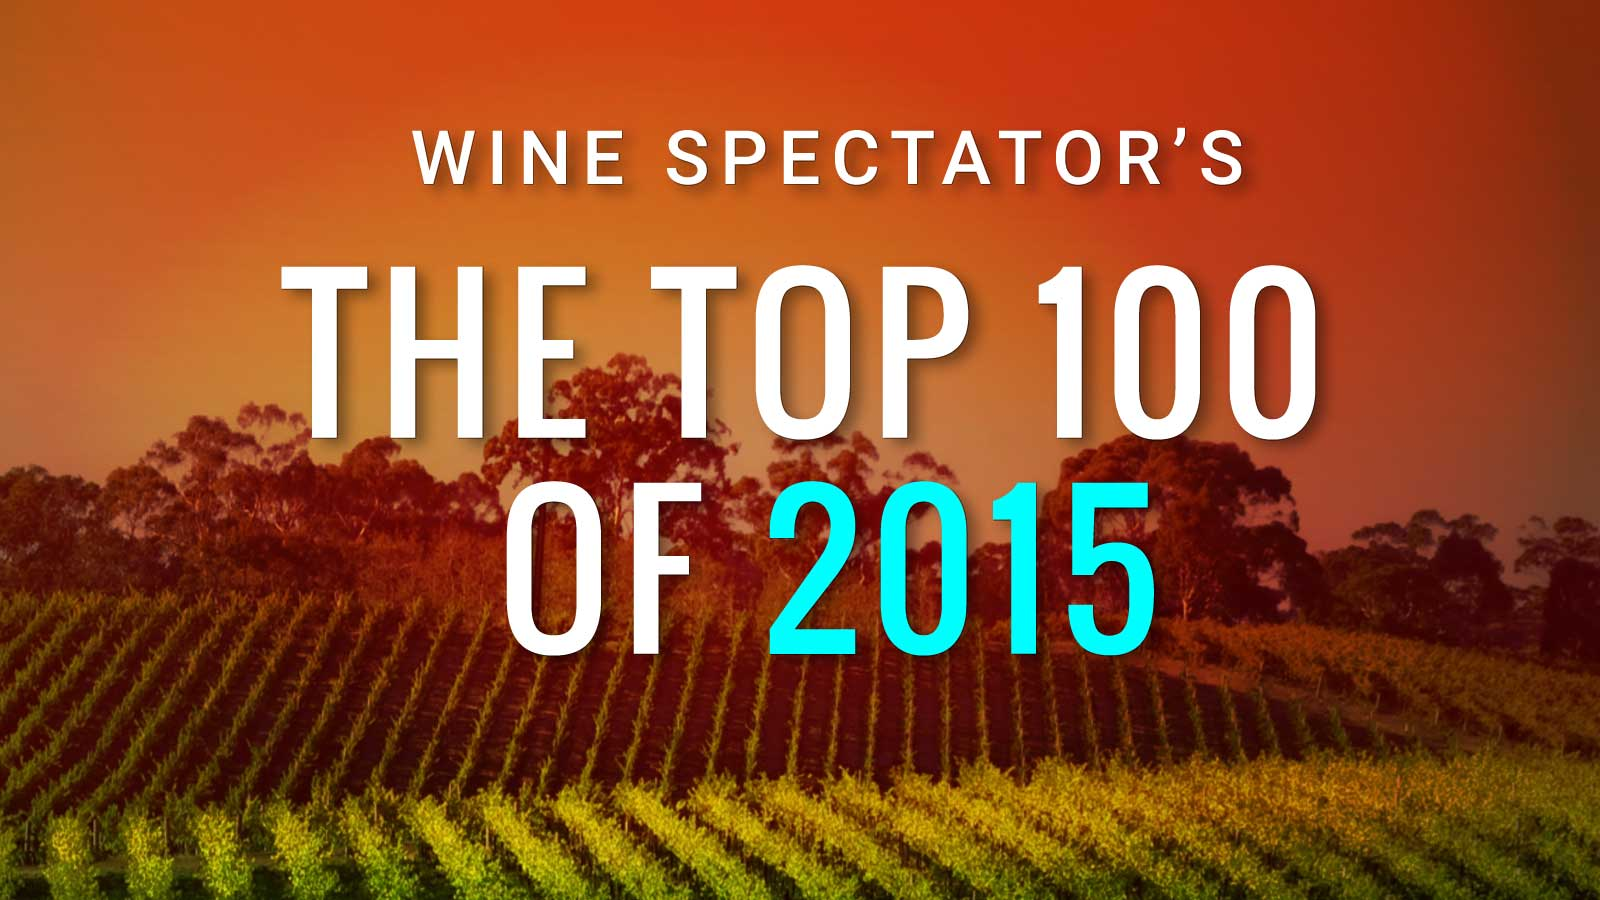 wine spectator 2015, top 100 2015, best wines of the world, top 100 wines of the world, best portuguese wines